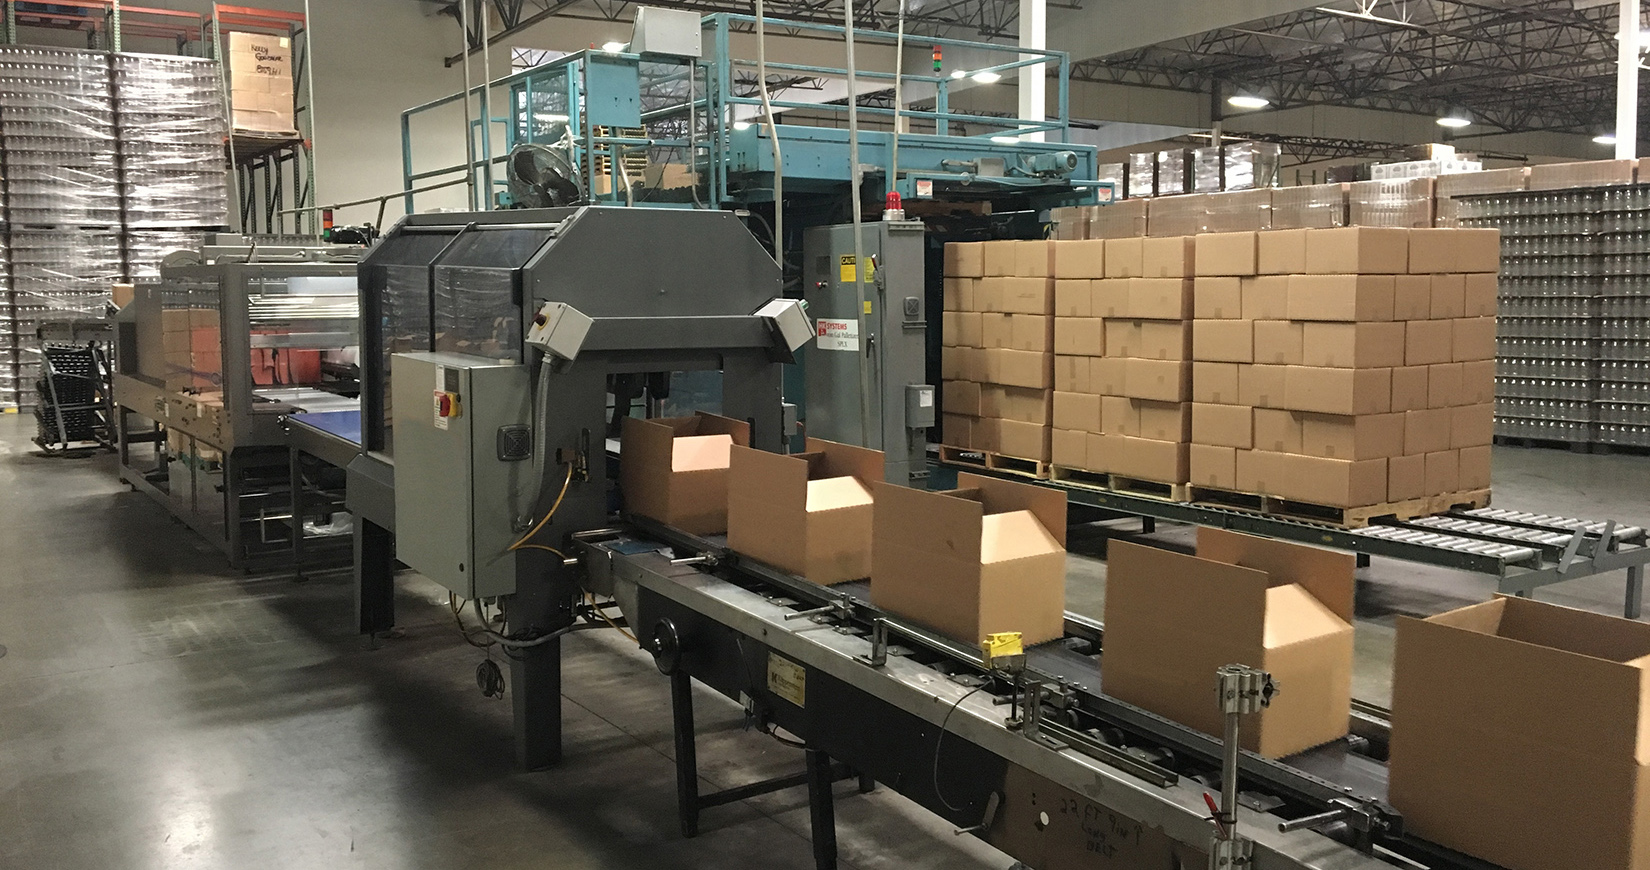 Food processing boxes